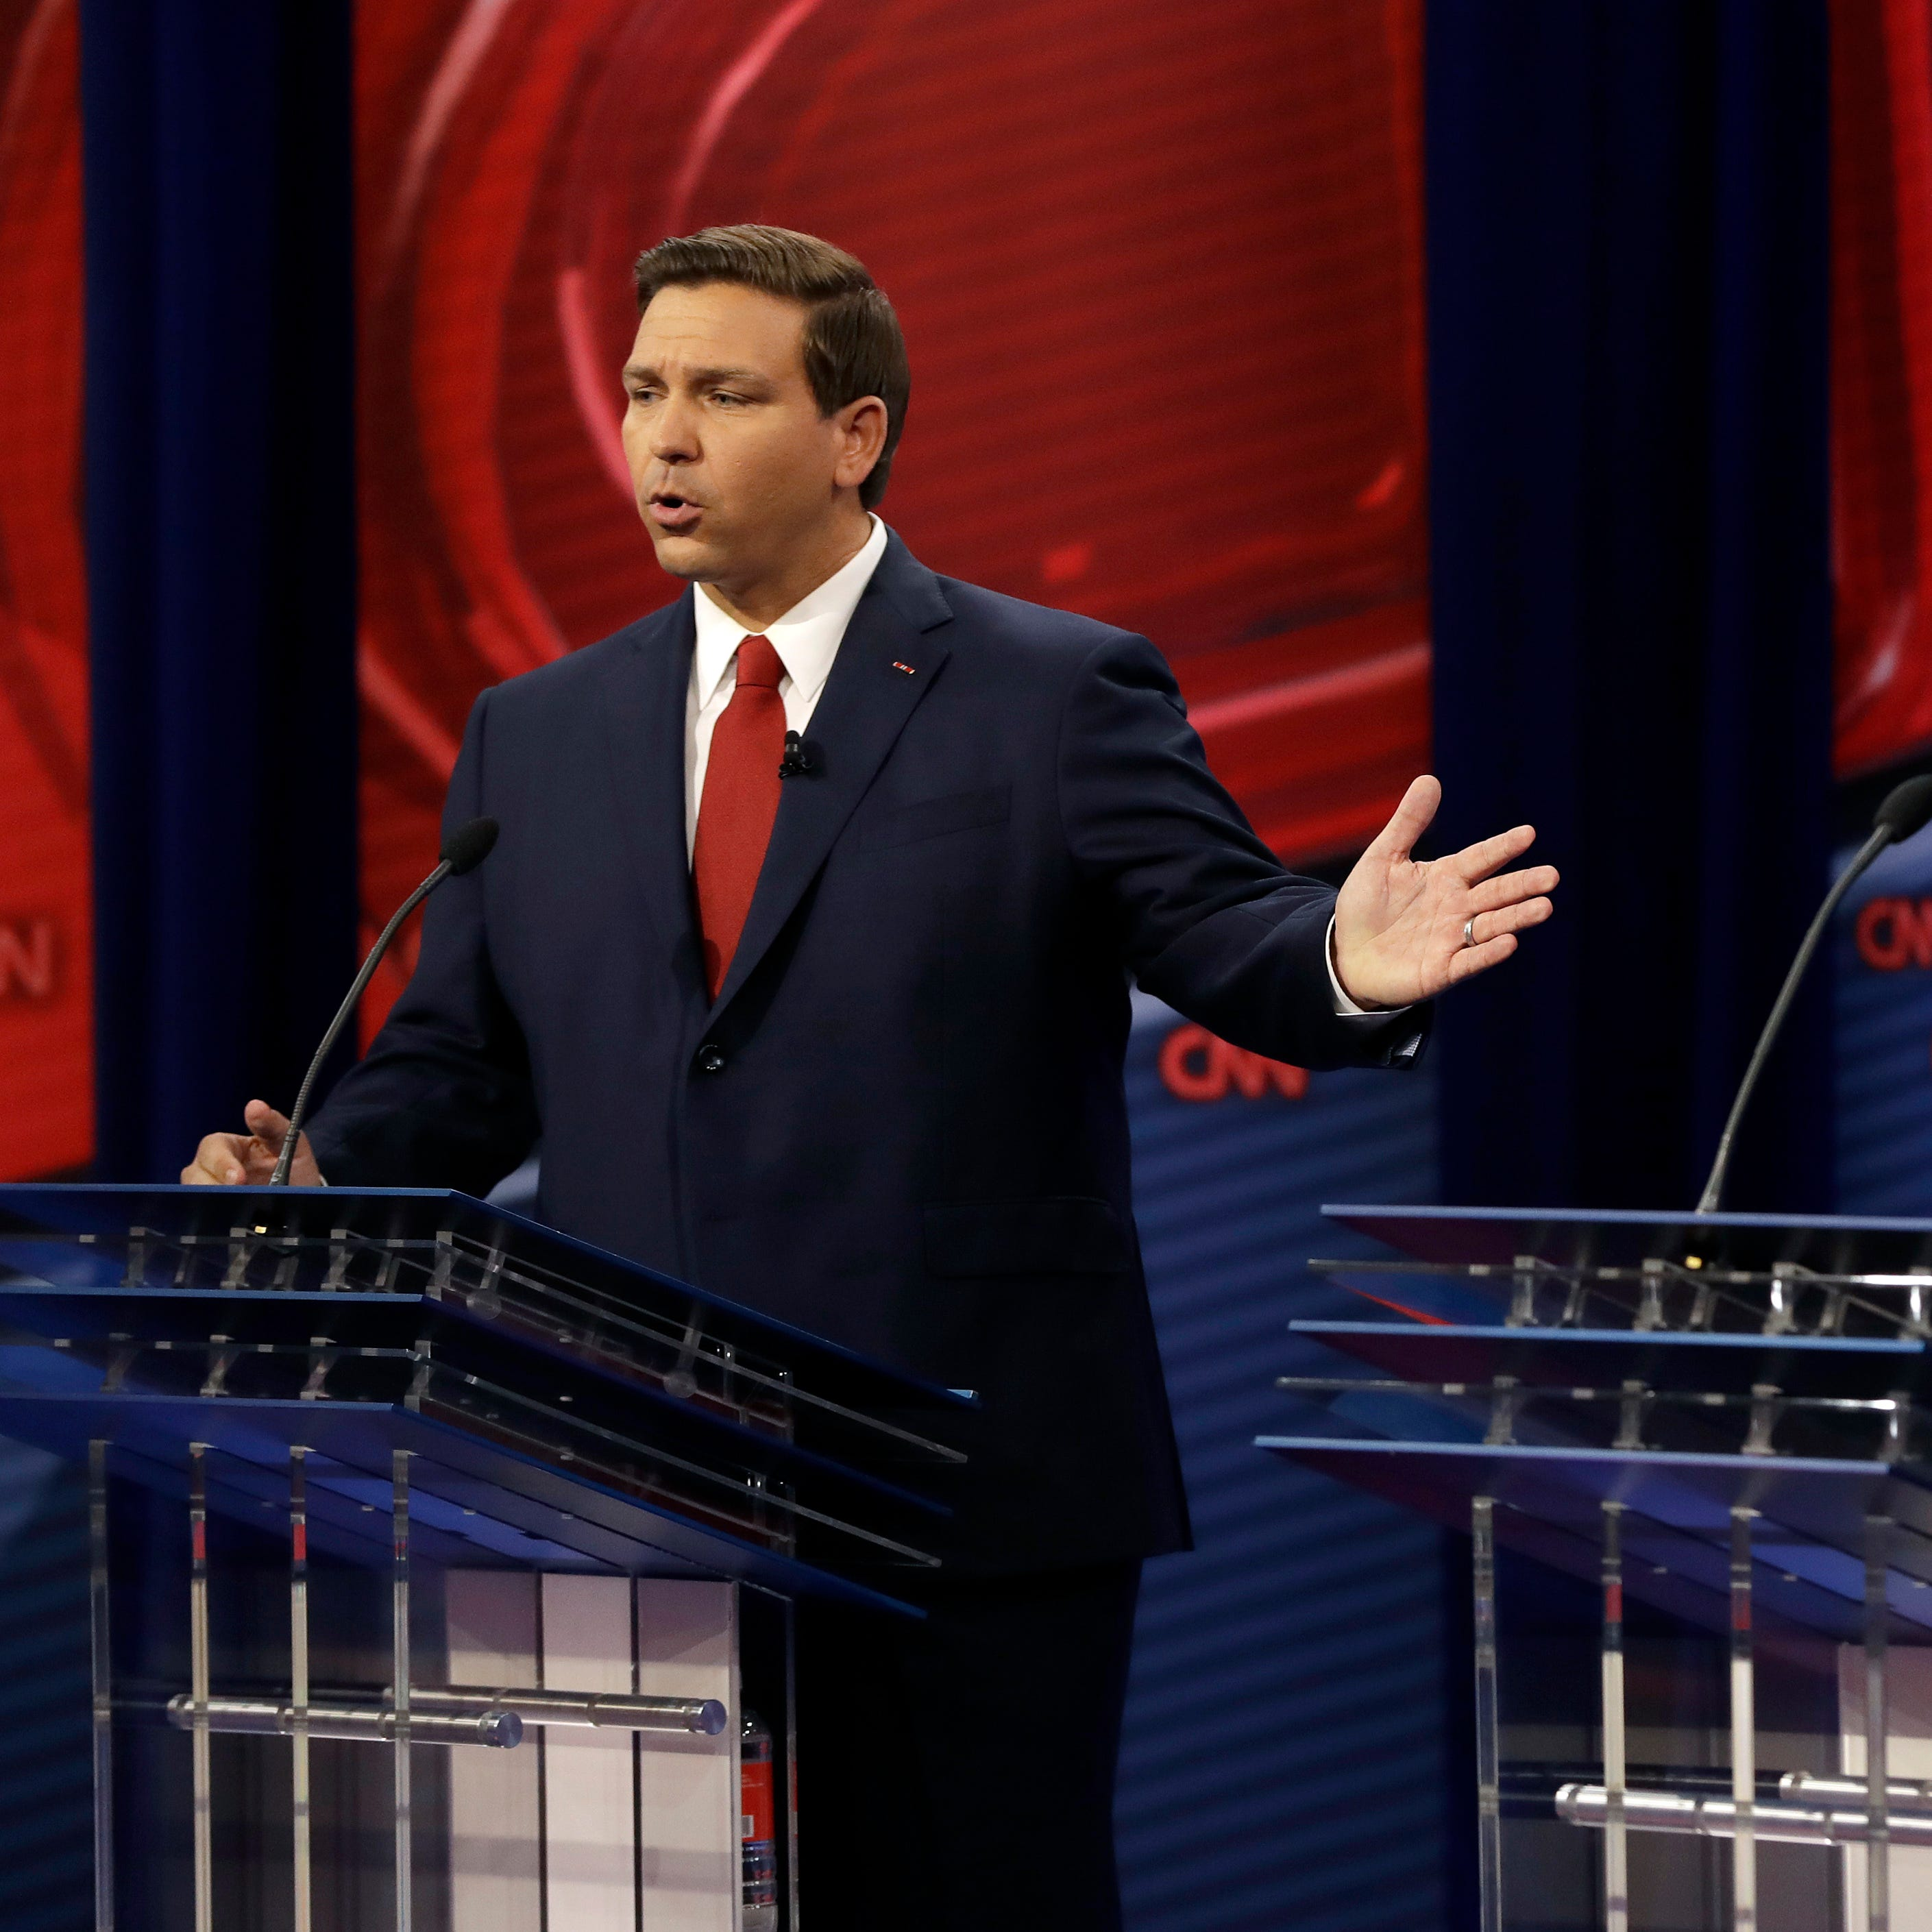 Ron DeSantis, Andrew Gillum fight over Trump and more in Florida debate on CNN